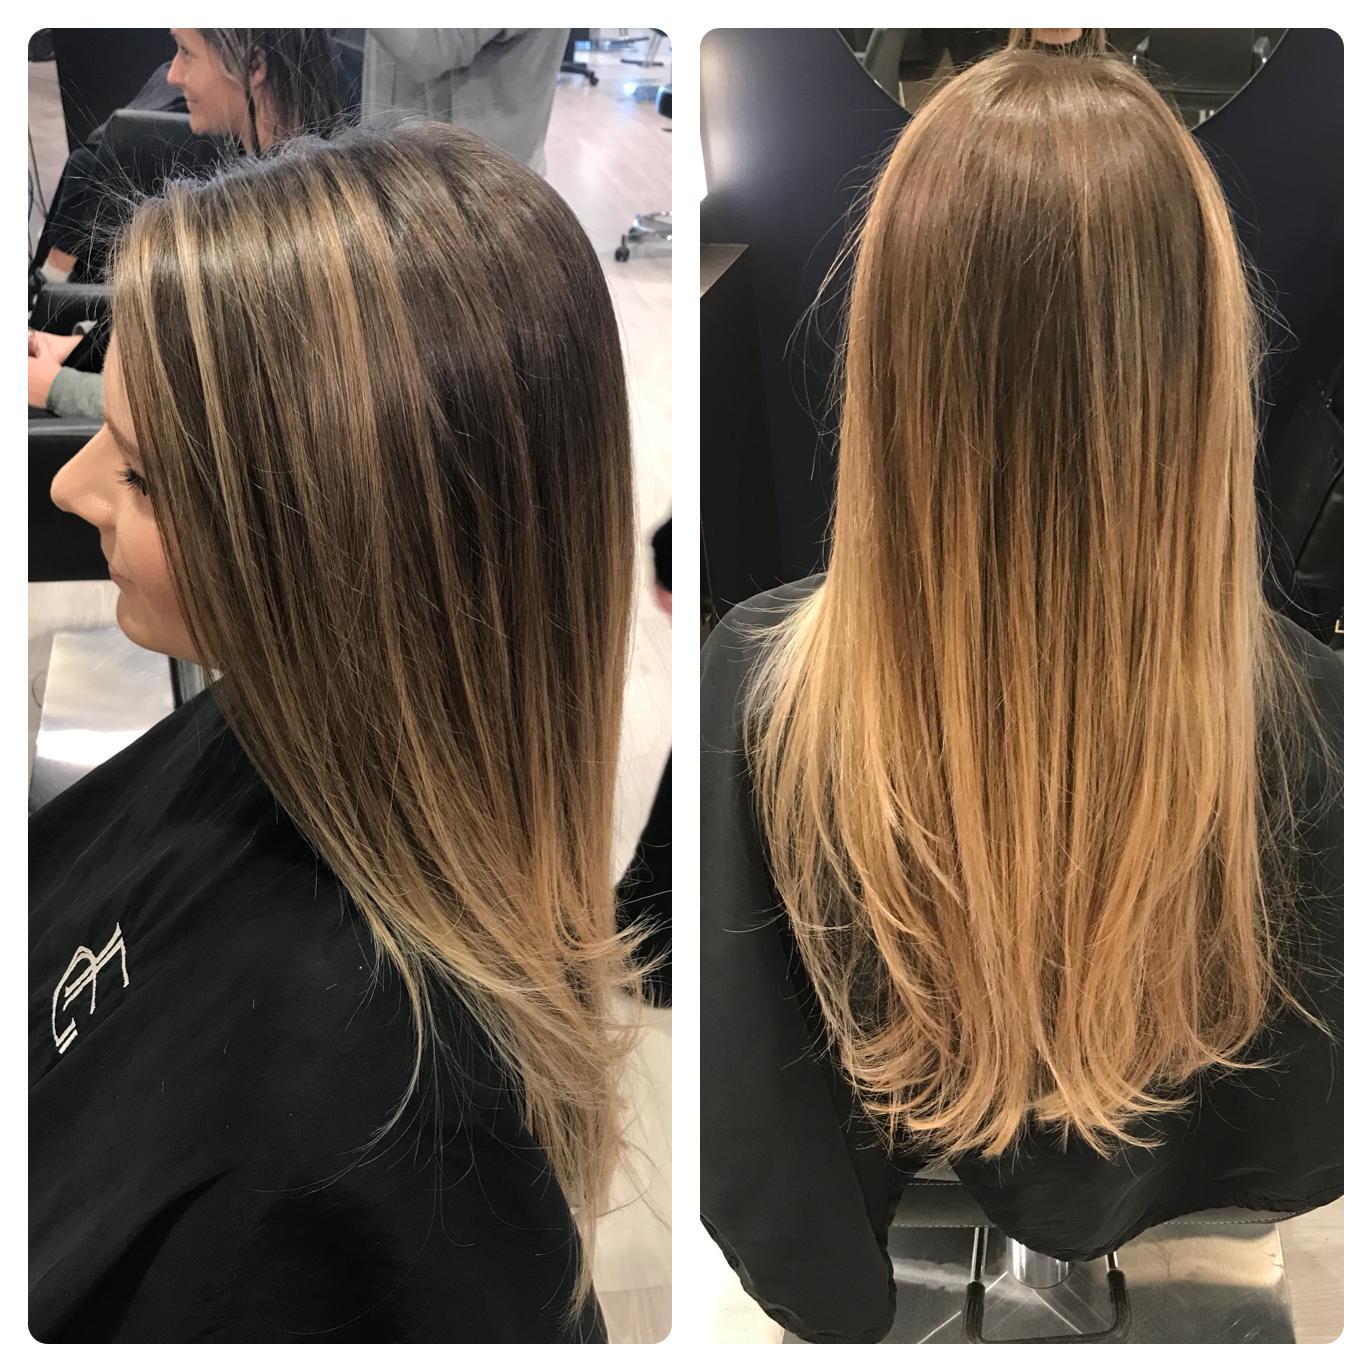 Blonde Balayage Ombr By Taylor At Frank Gironda In Wheaton Il